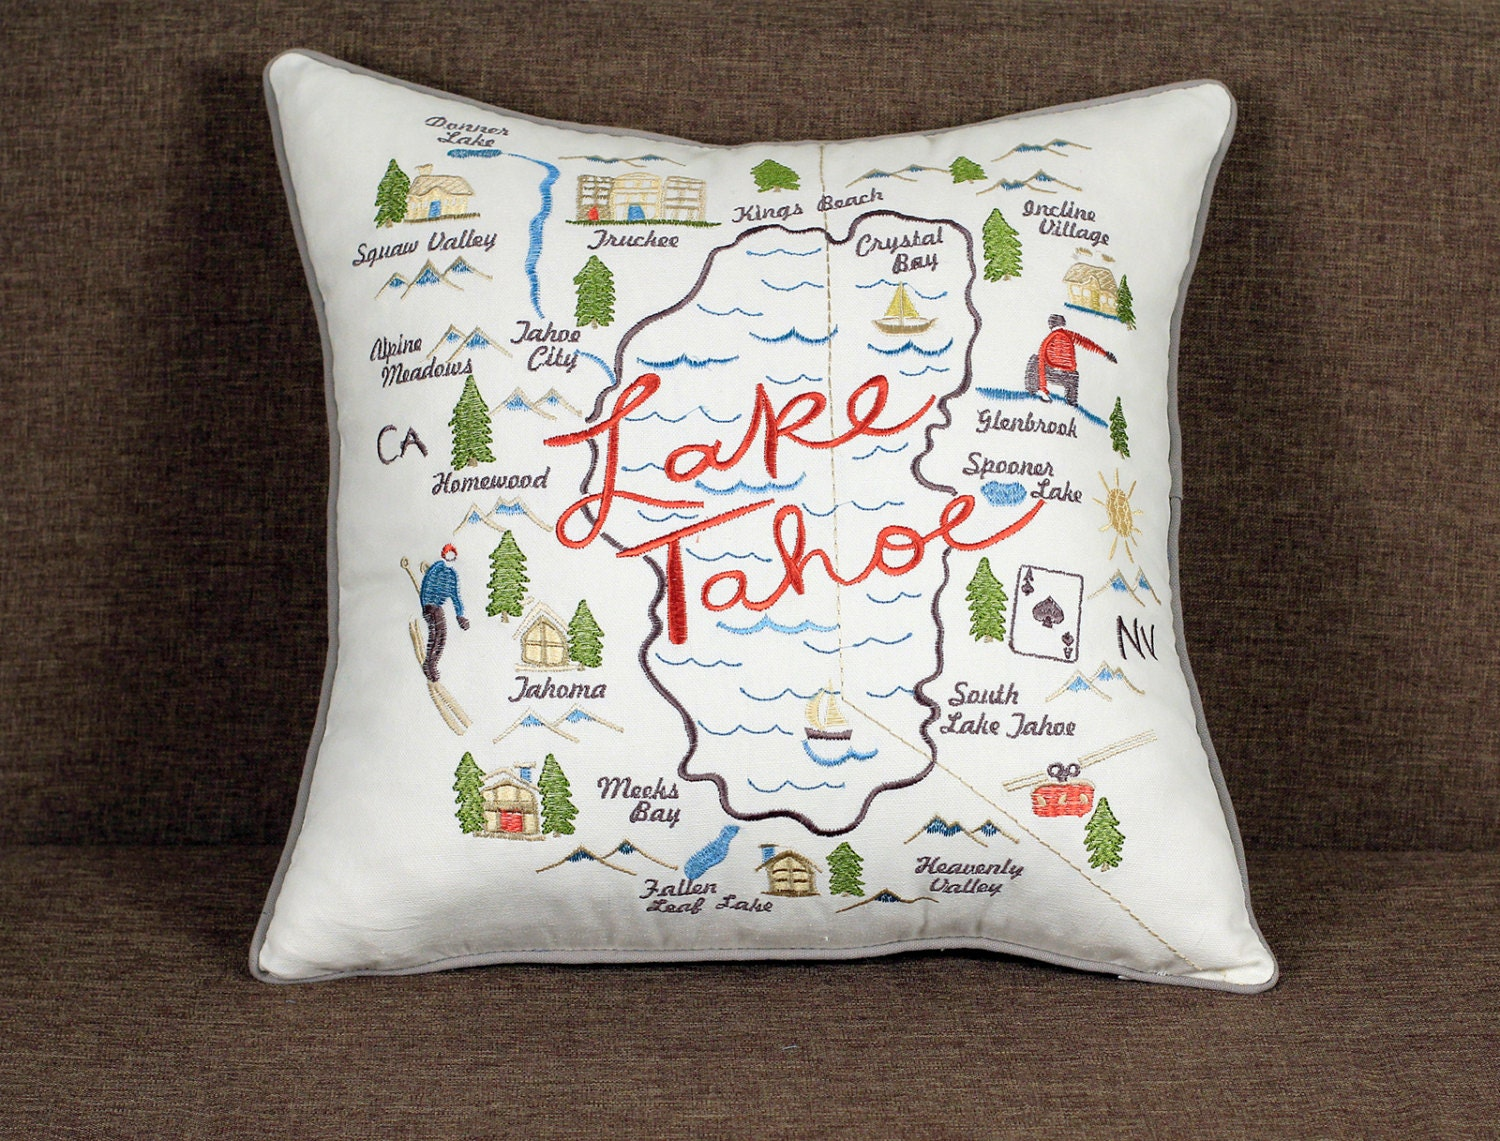 Pillow Cover Lake Tahoe Pillowcases Embroidered Throw Pillows Outdoor Pillow  Decorative Pillow Gift Wedding Anniversary Birthday